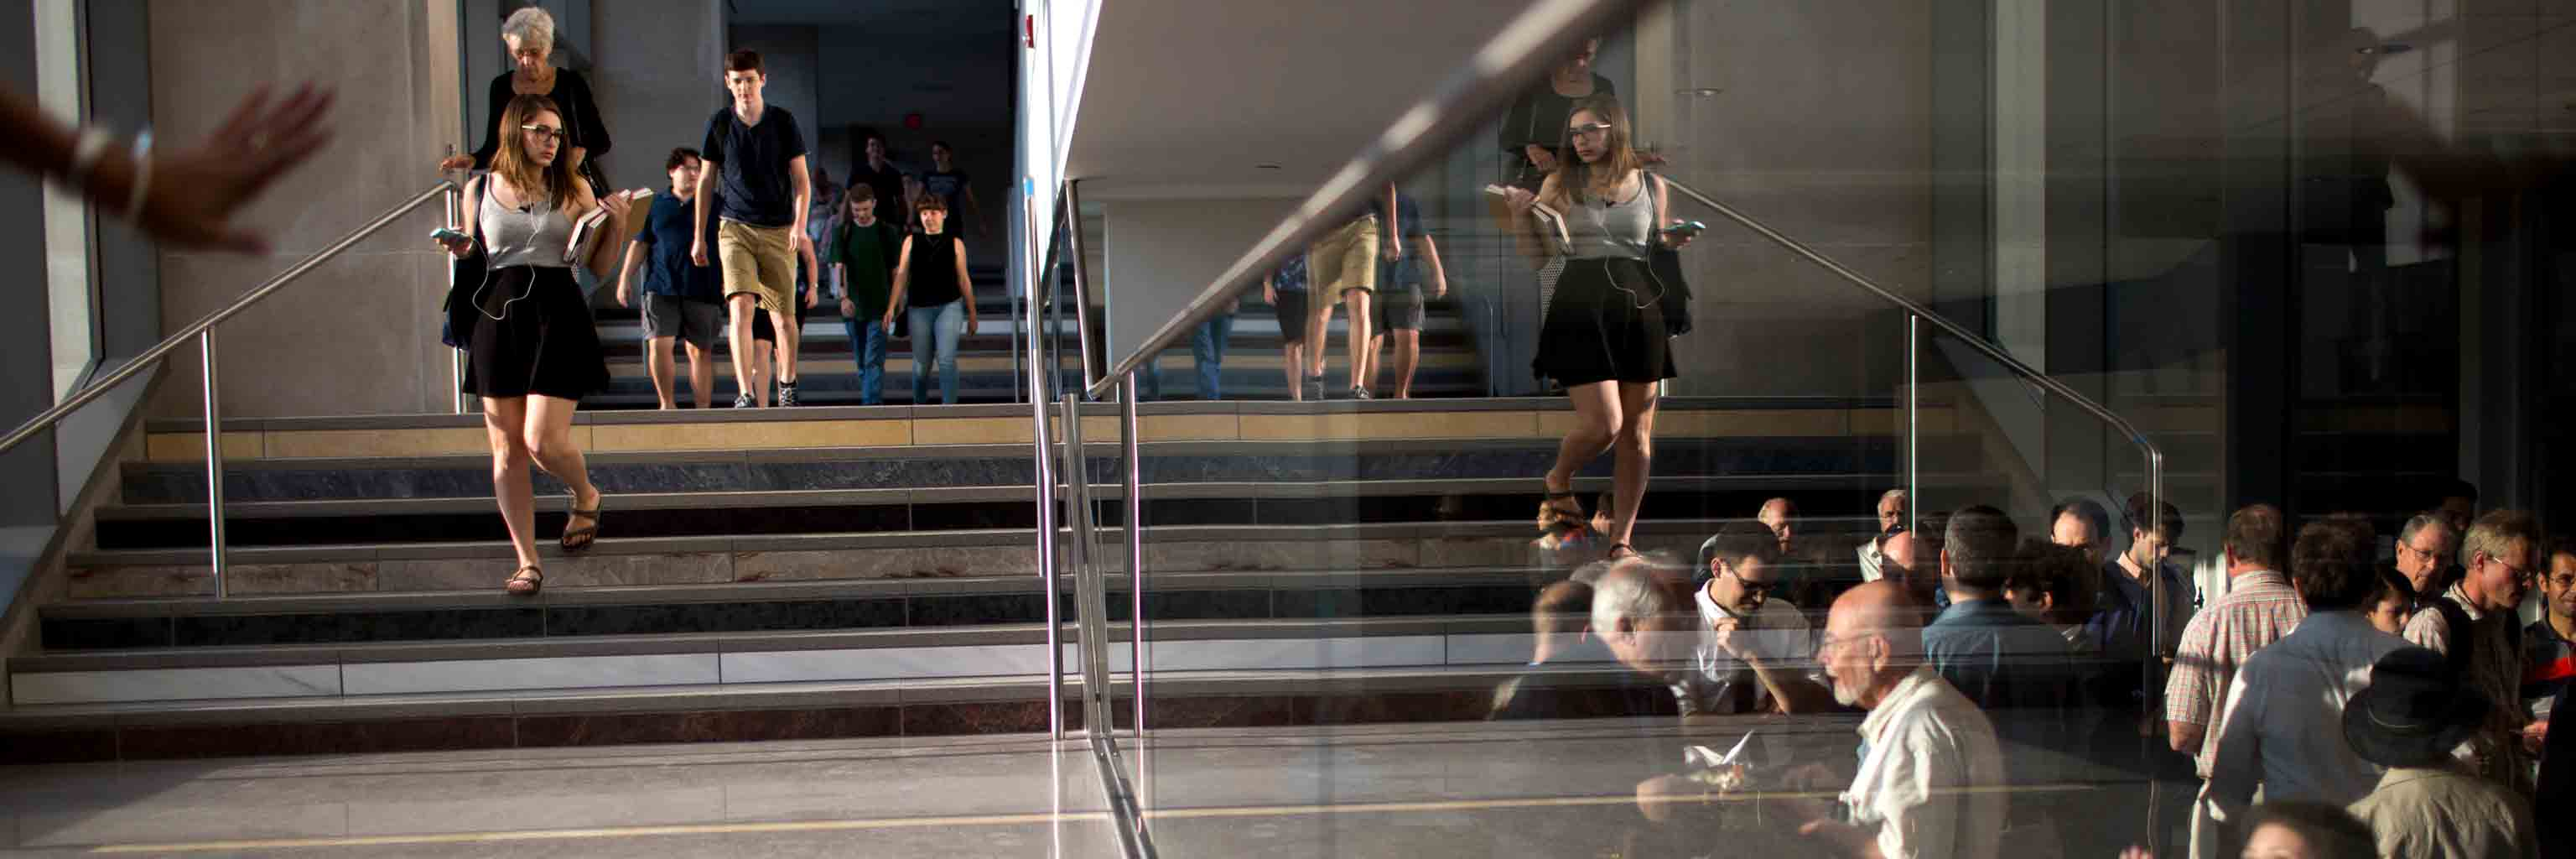 People, reflected in glass, walk down stairs.